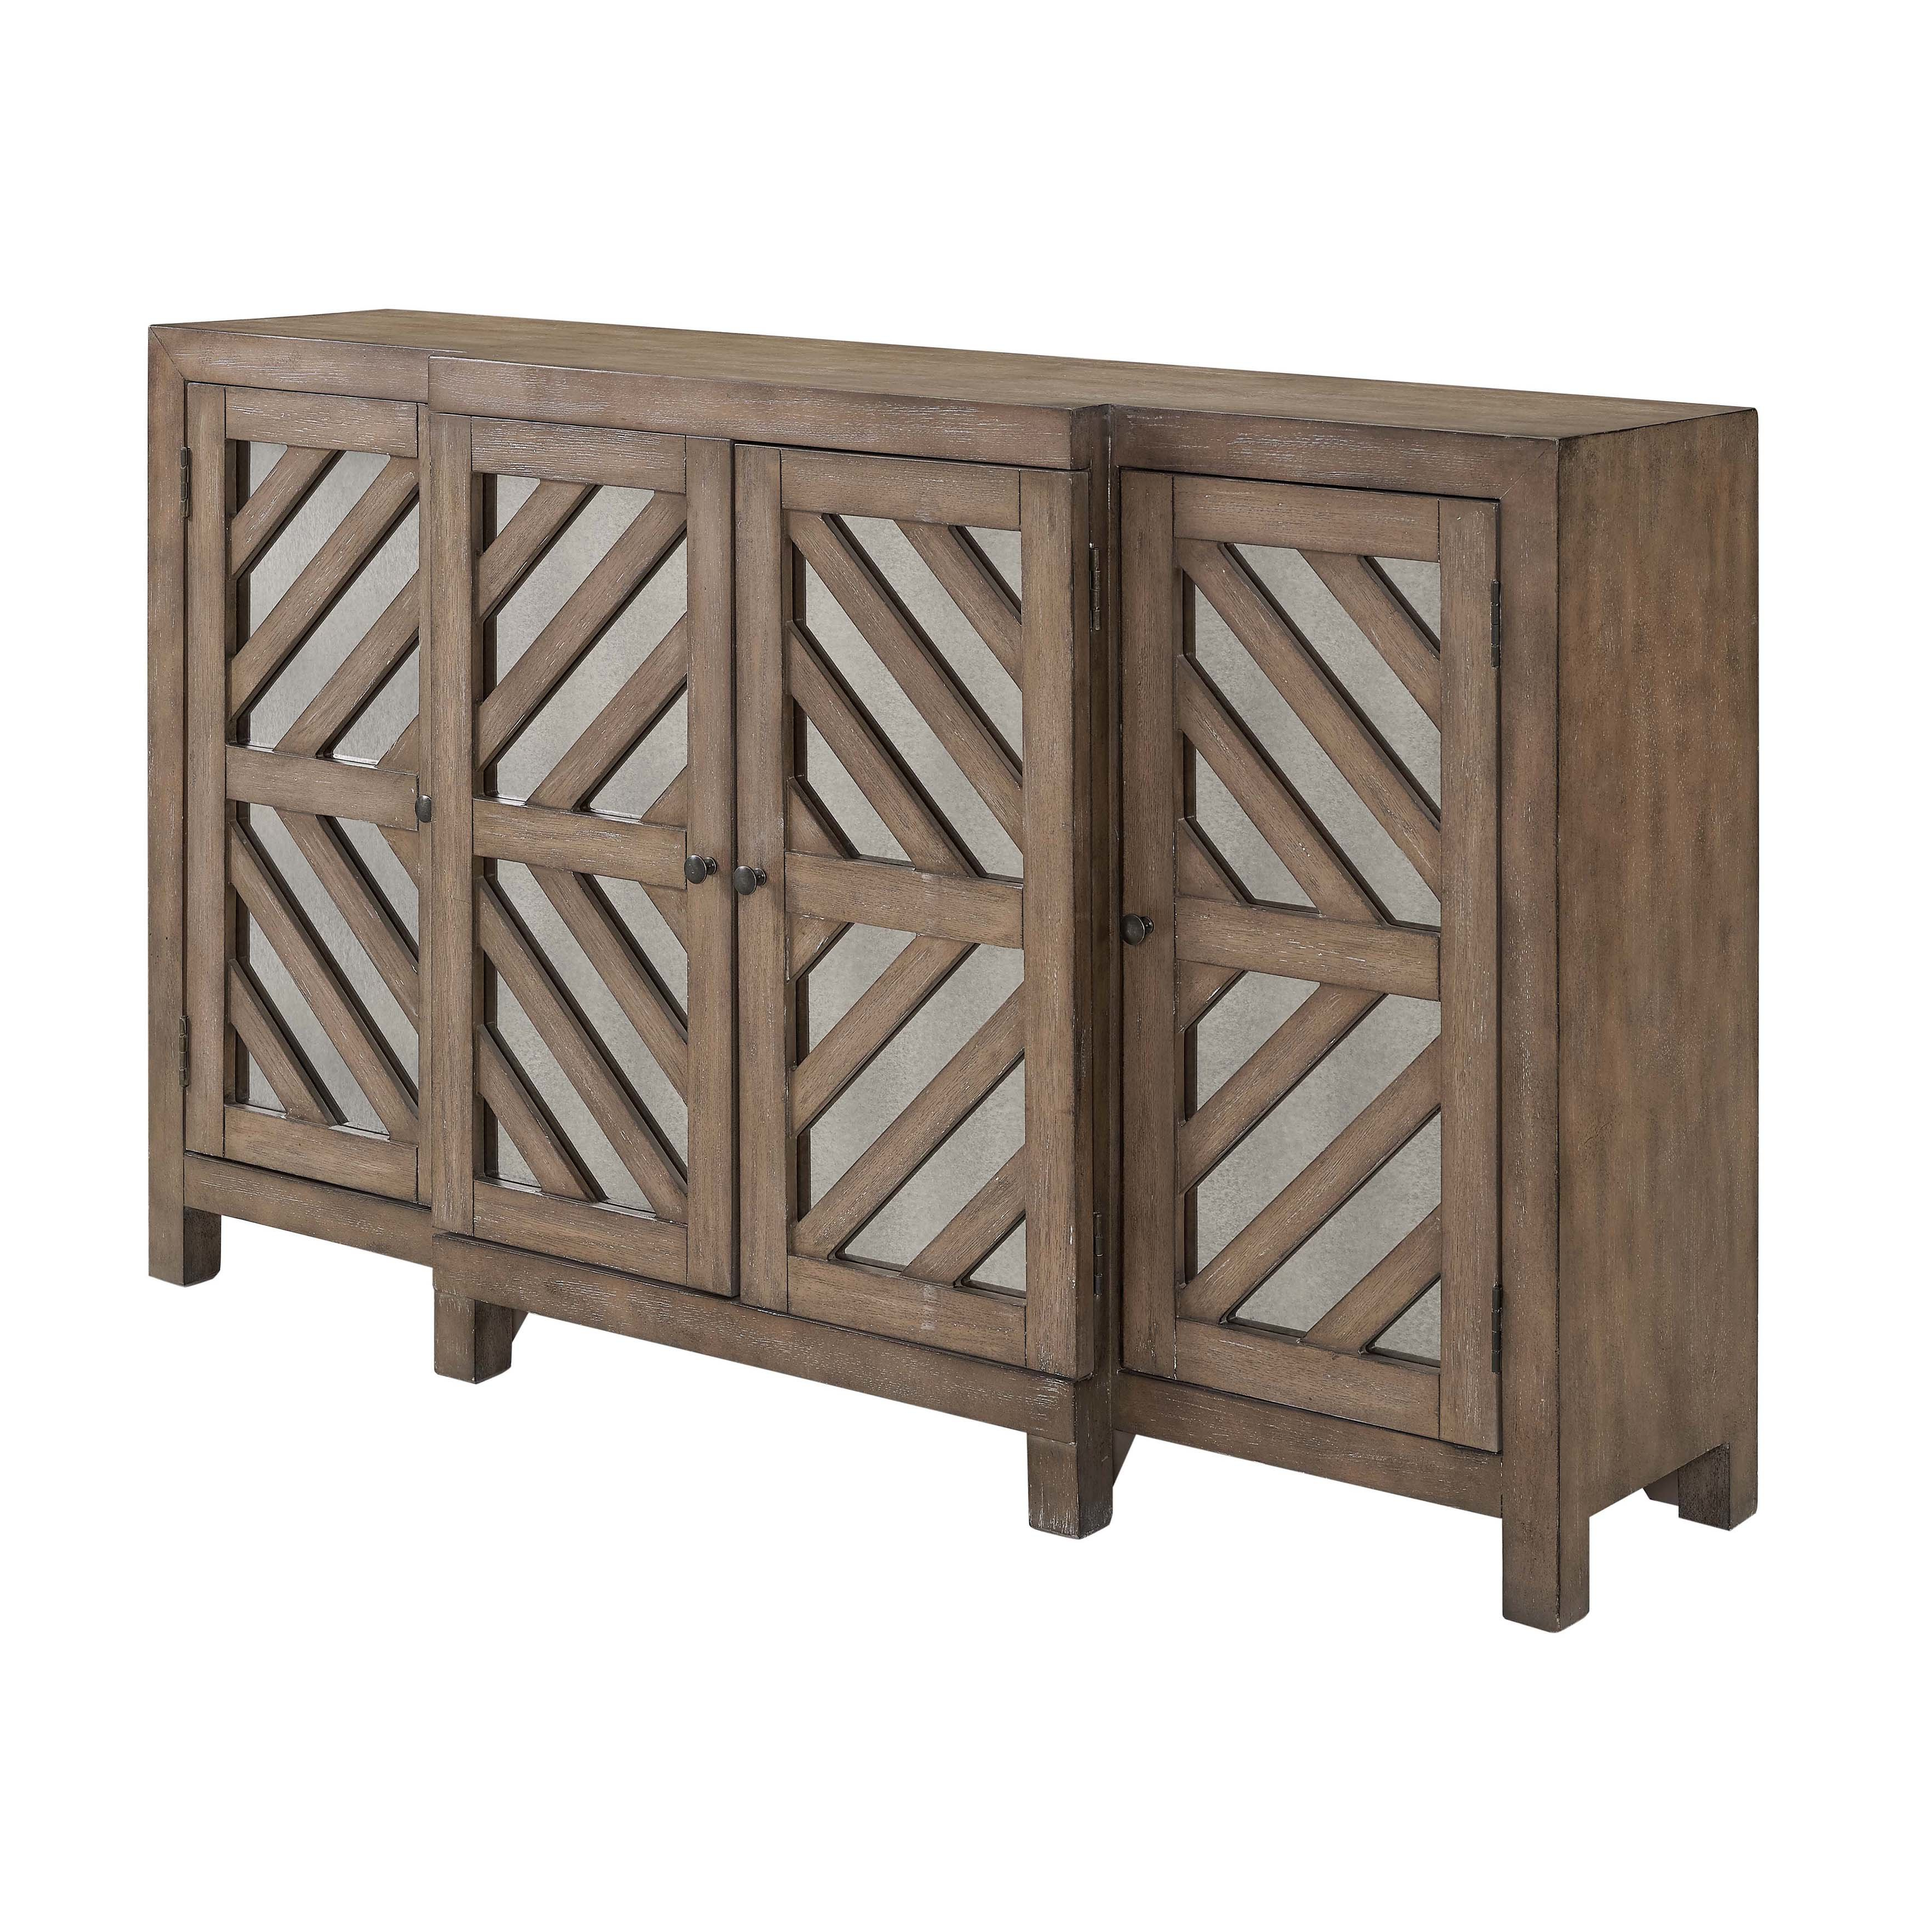 Farmhouse & Rustic Sideboards & Buffets | Birch Lane With Regard To Floral Beauty Credenzas (View 8 of 20)